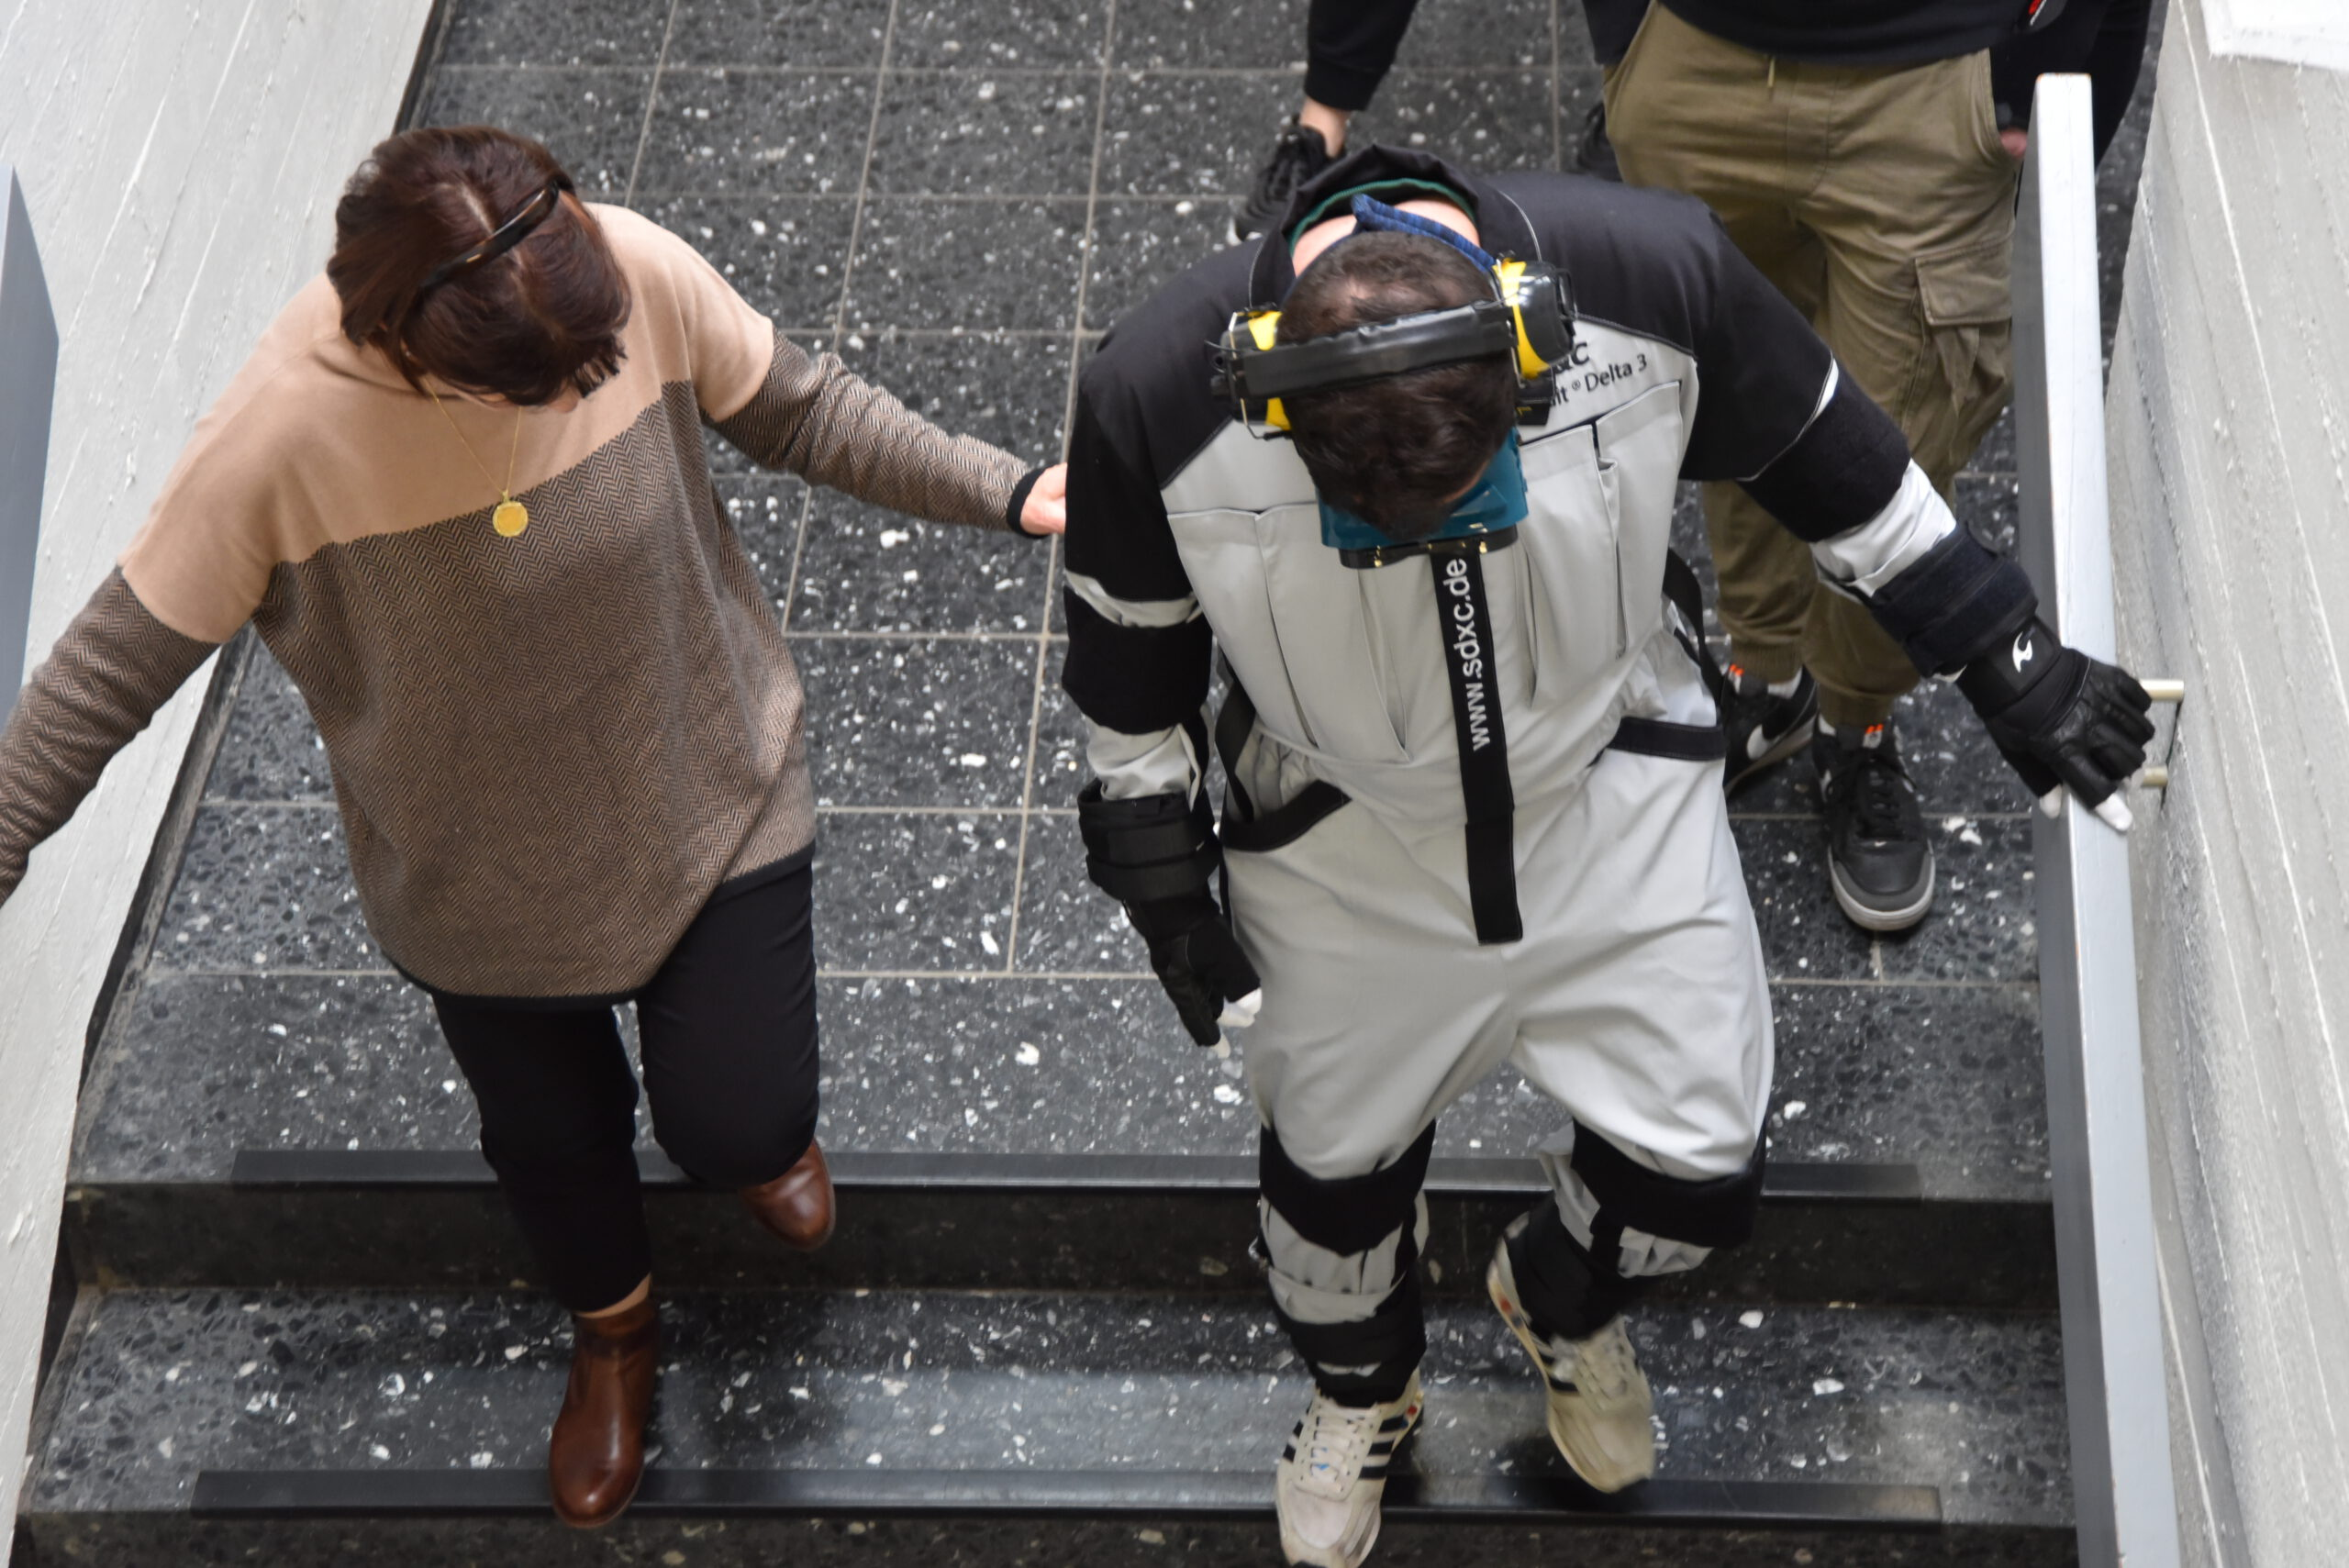 Old age problems experienced on the stairs by simulation with the SD&C Senior Suit Delta 3 old age simulation suit